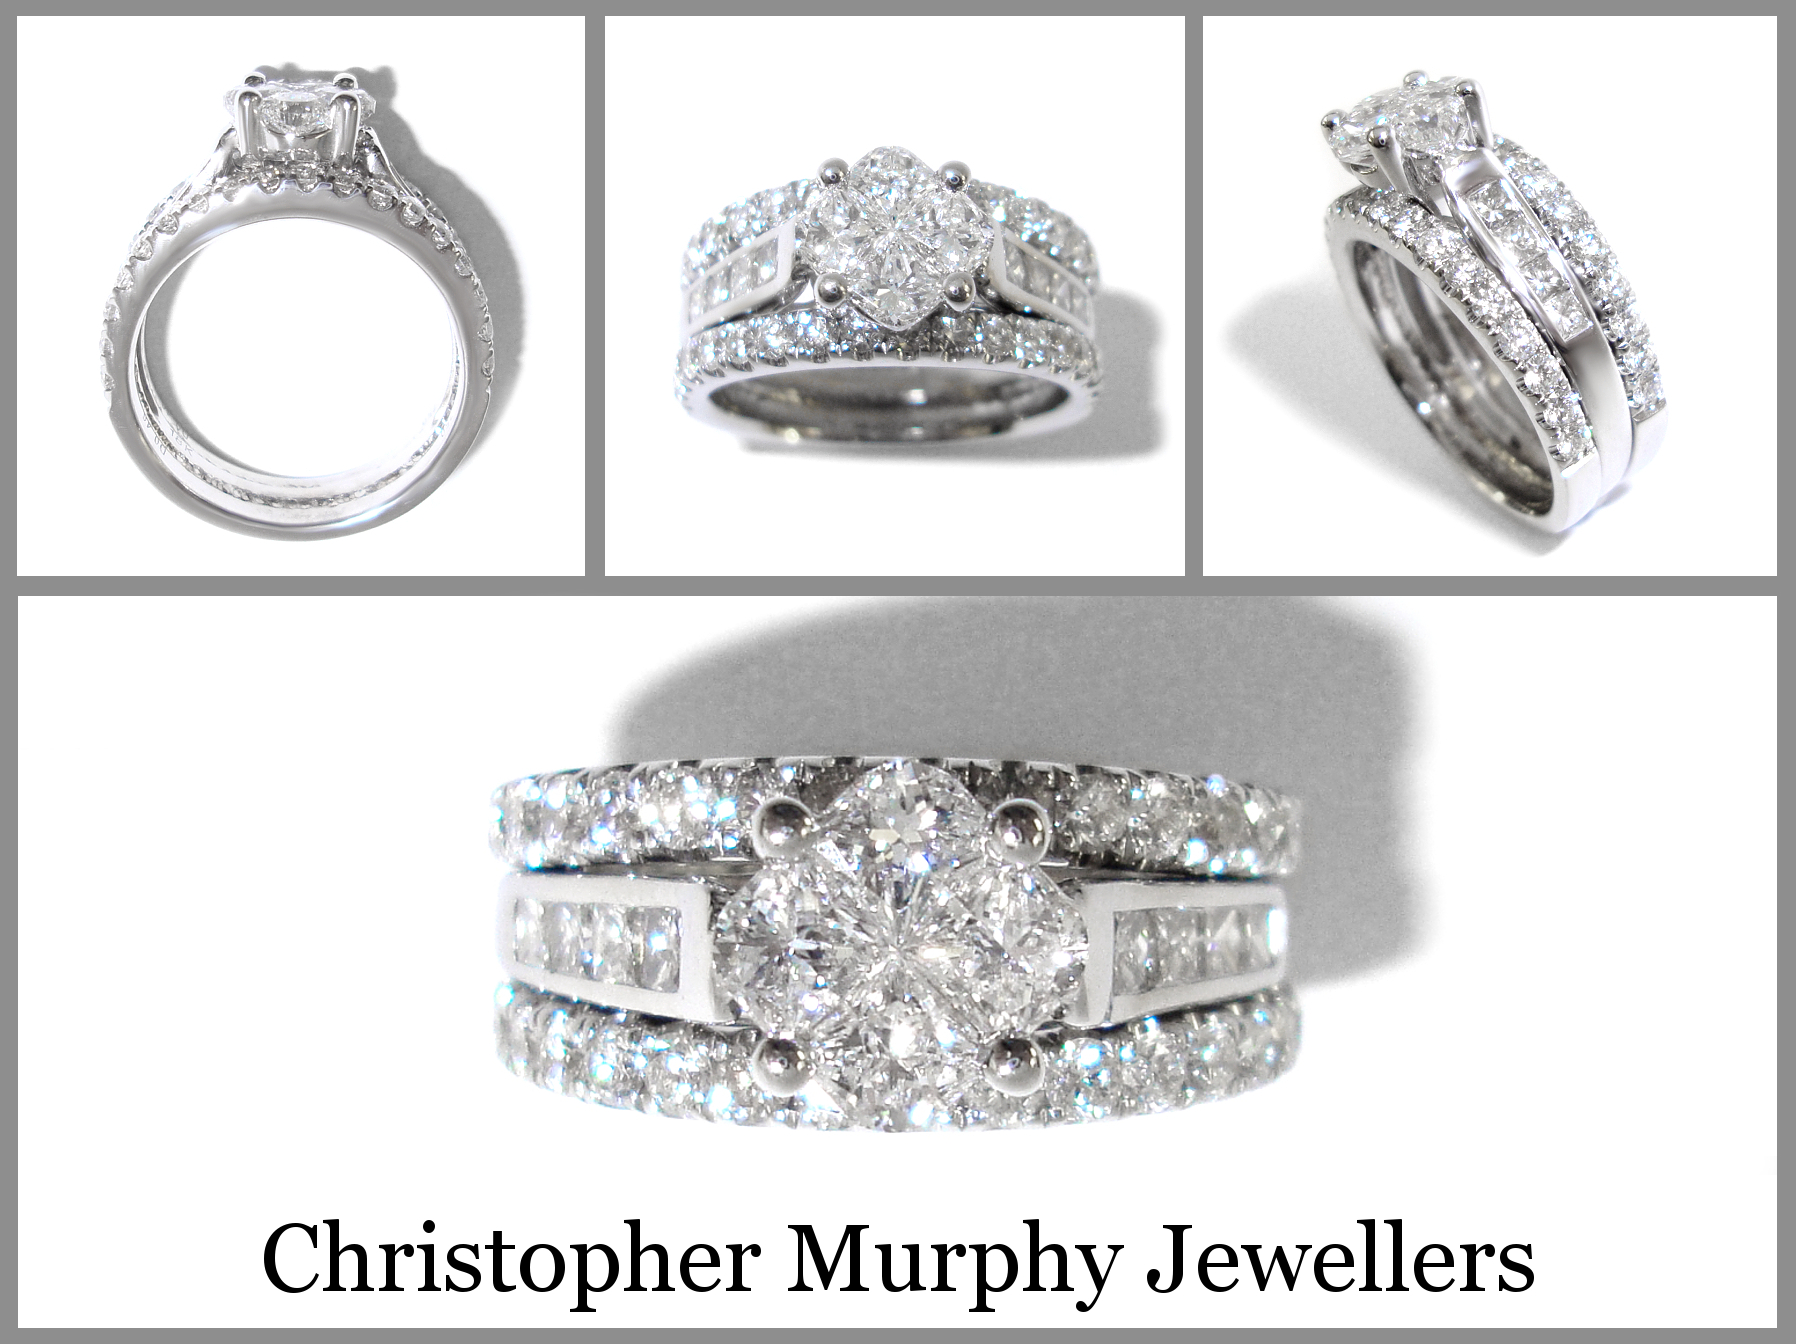 double wedding rings christopher murphy jewellers With double wedding ring